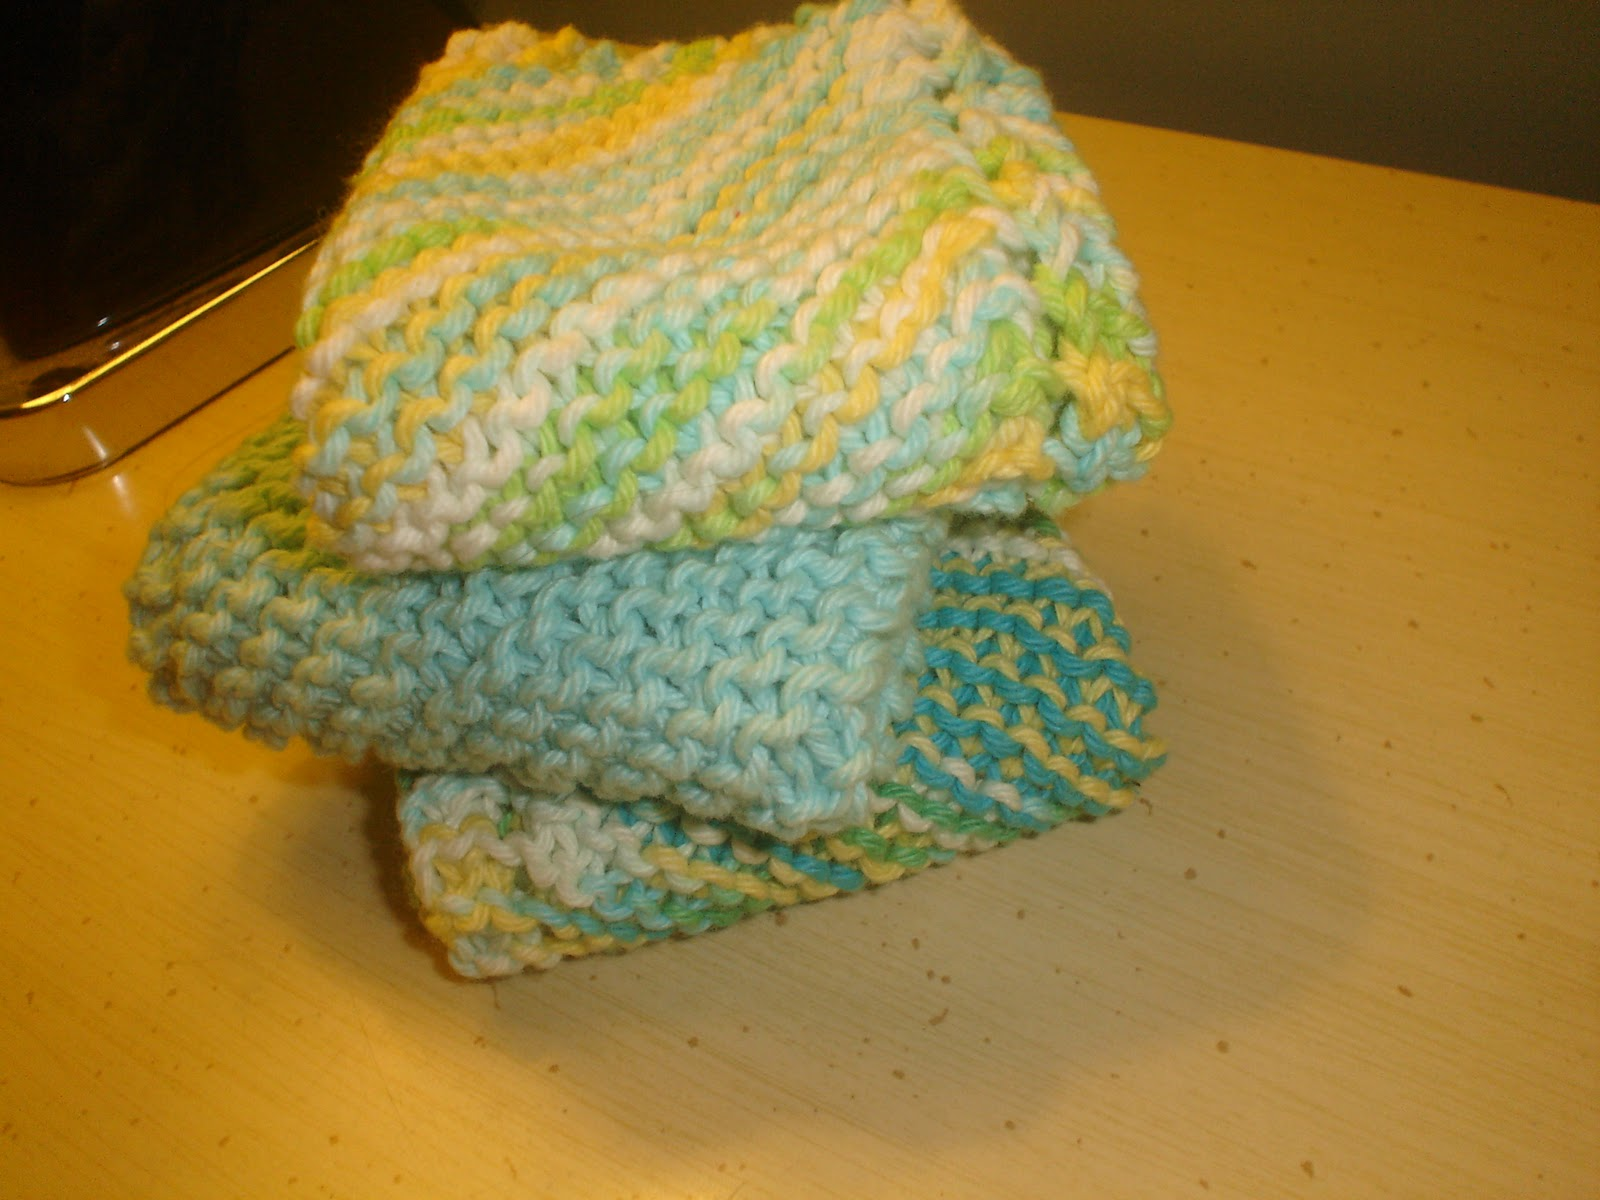 Knitted Dishcloth Patterns For Variegated Yarn : The Craft Librarian: December 2011